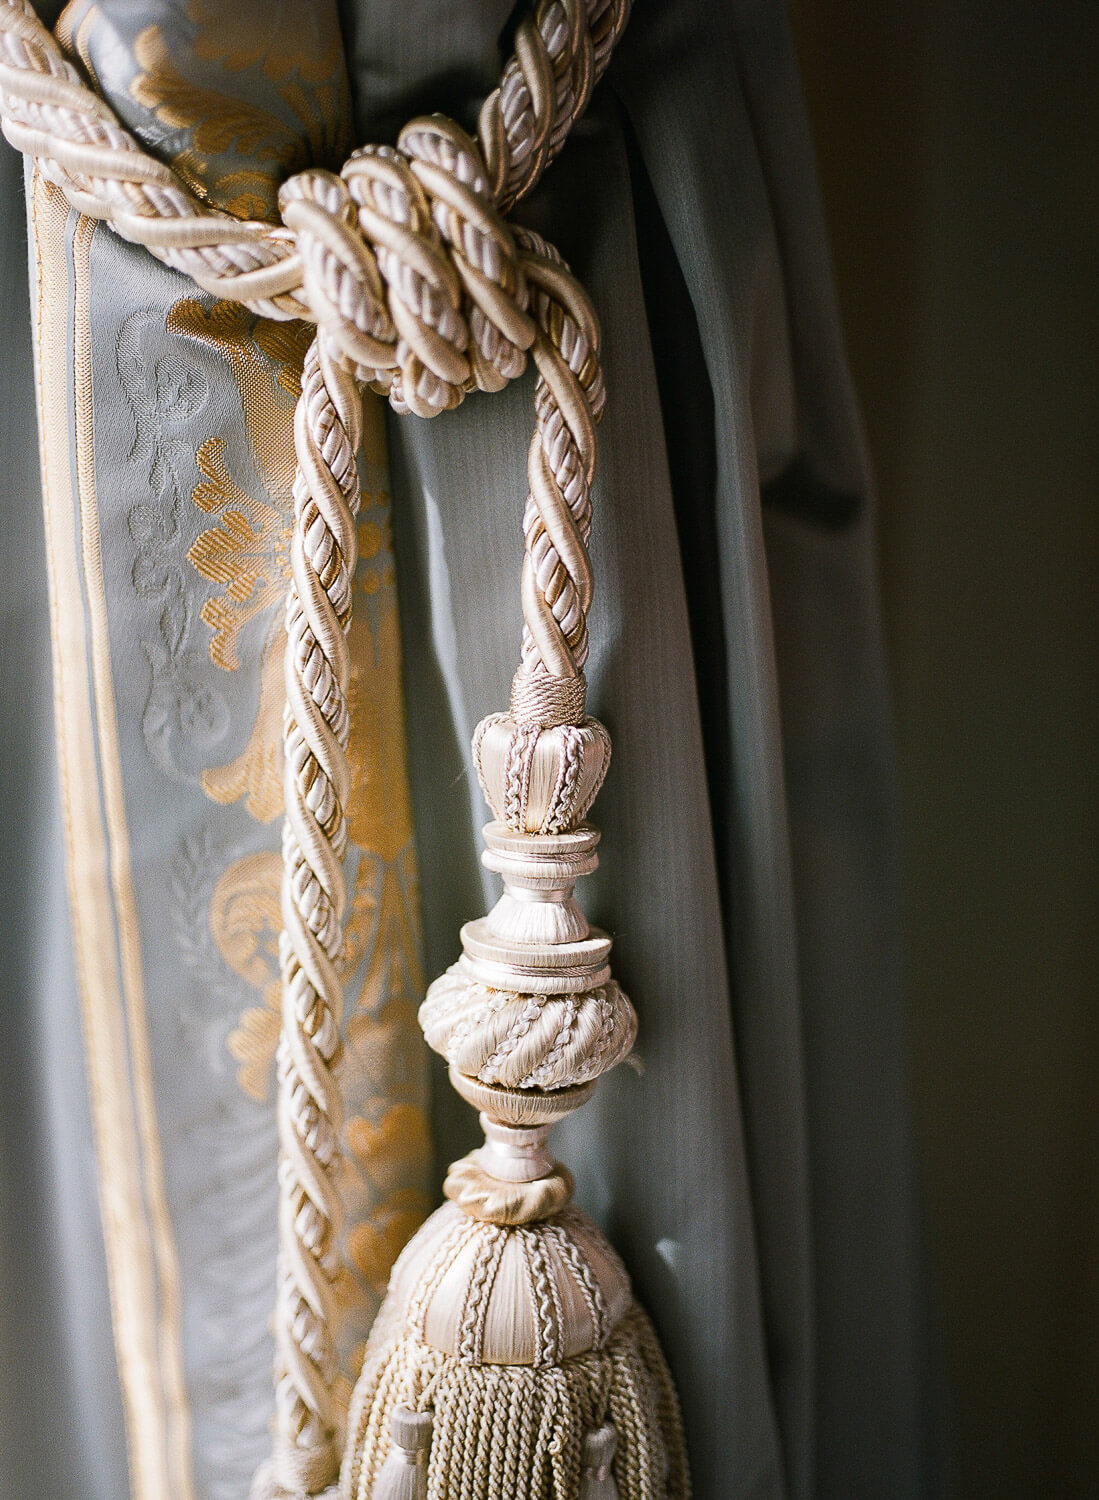 curtain tassel detail by Portugal Wedding Photographer